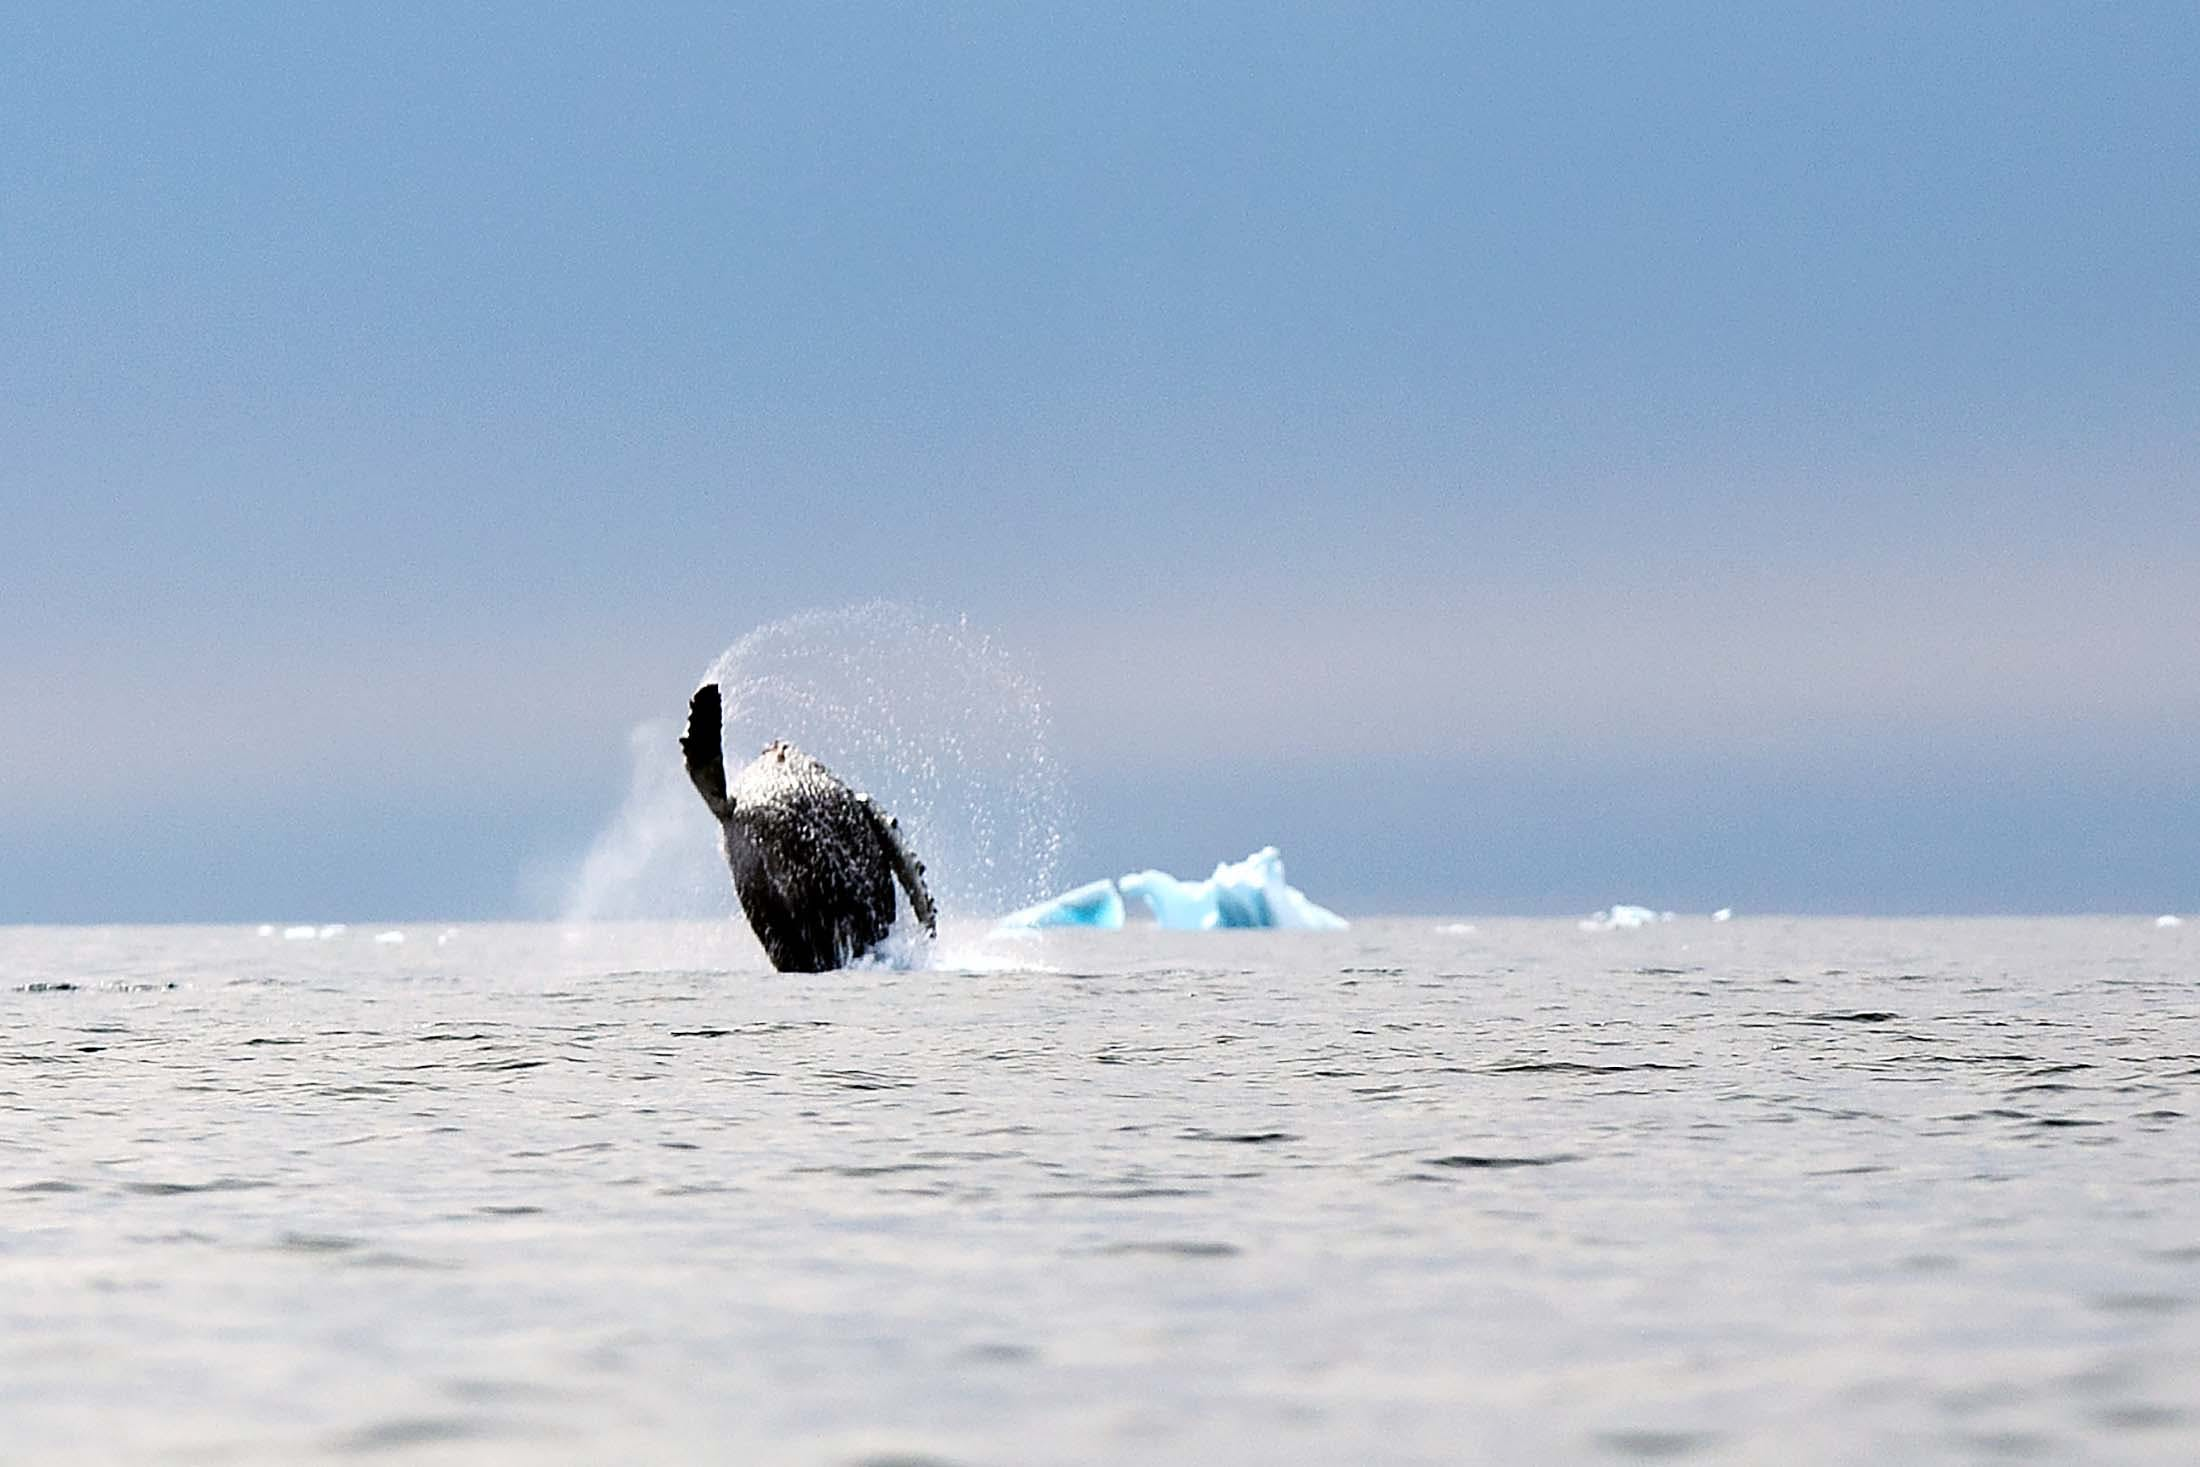 Spotted during an Antarctic expedition: a breaching humpback whale in Cierva Cove, Antarctica